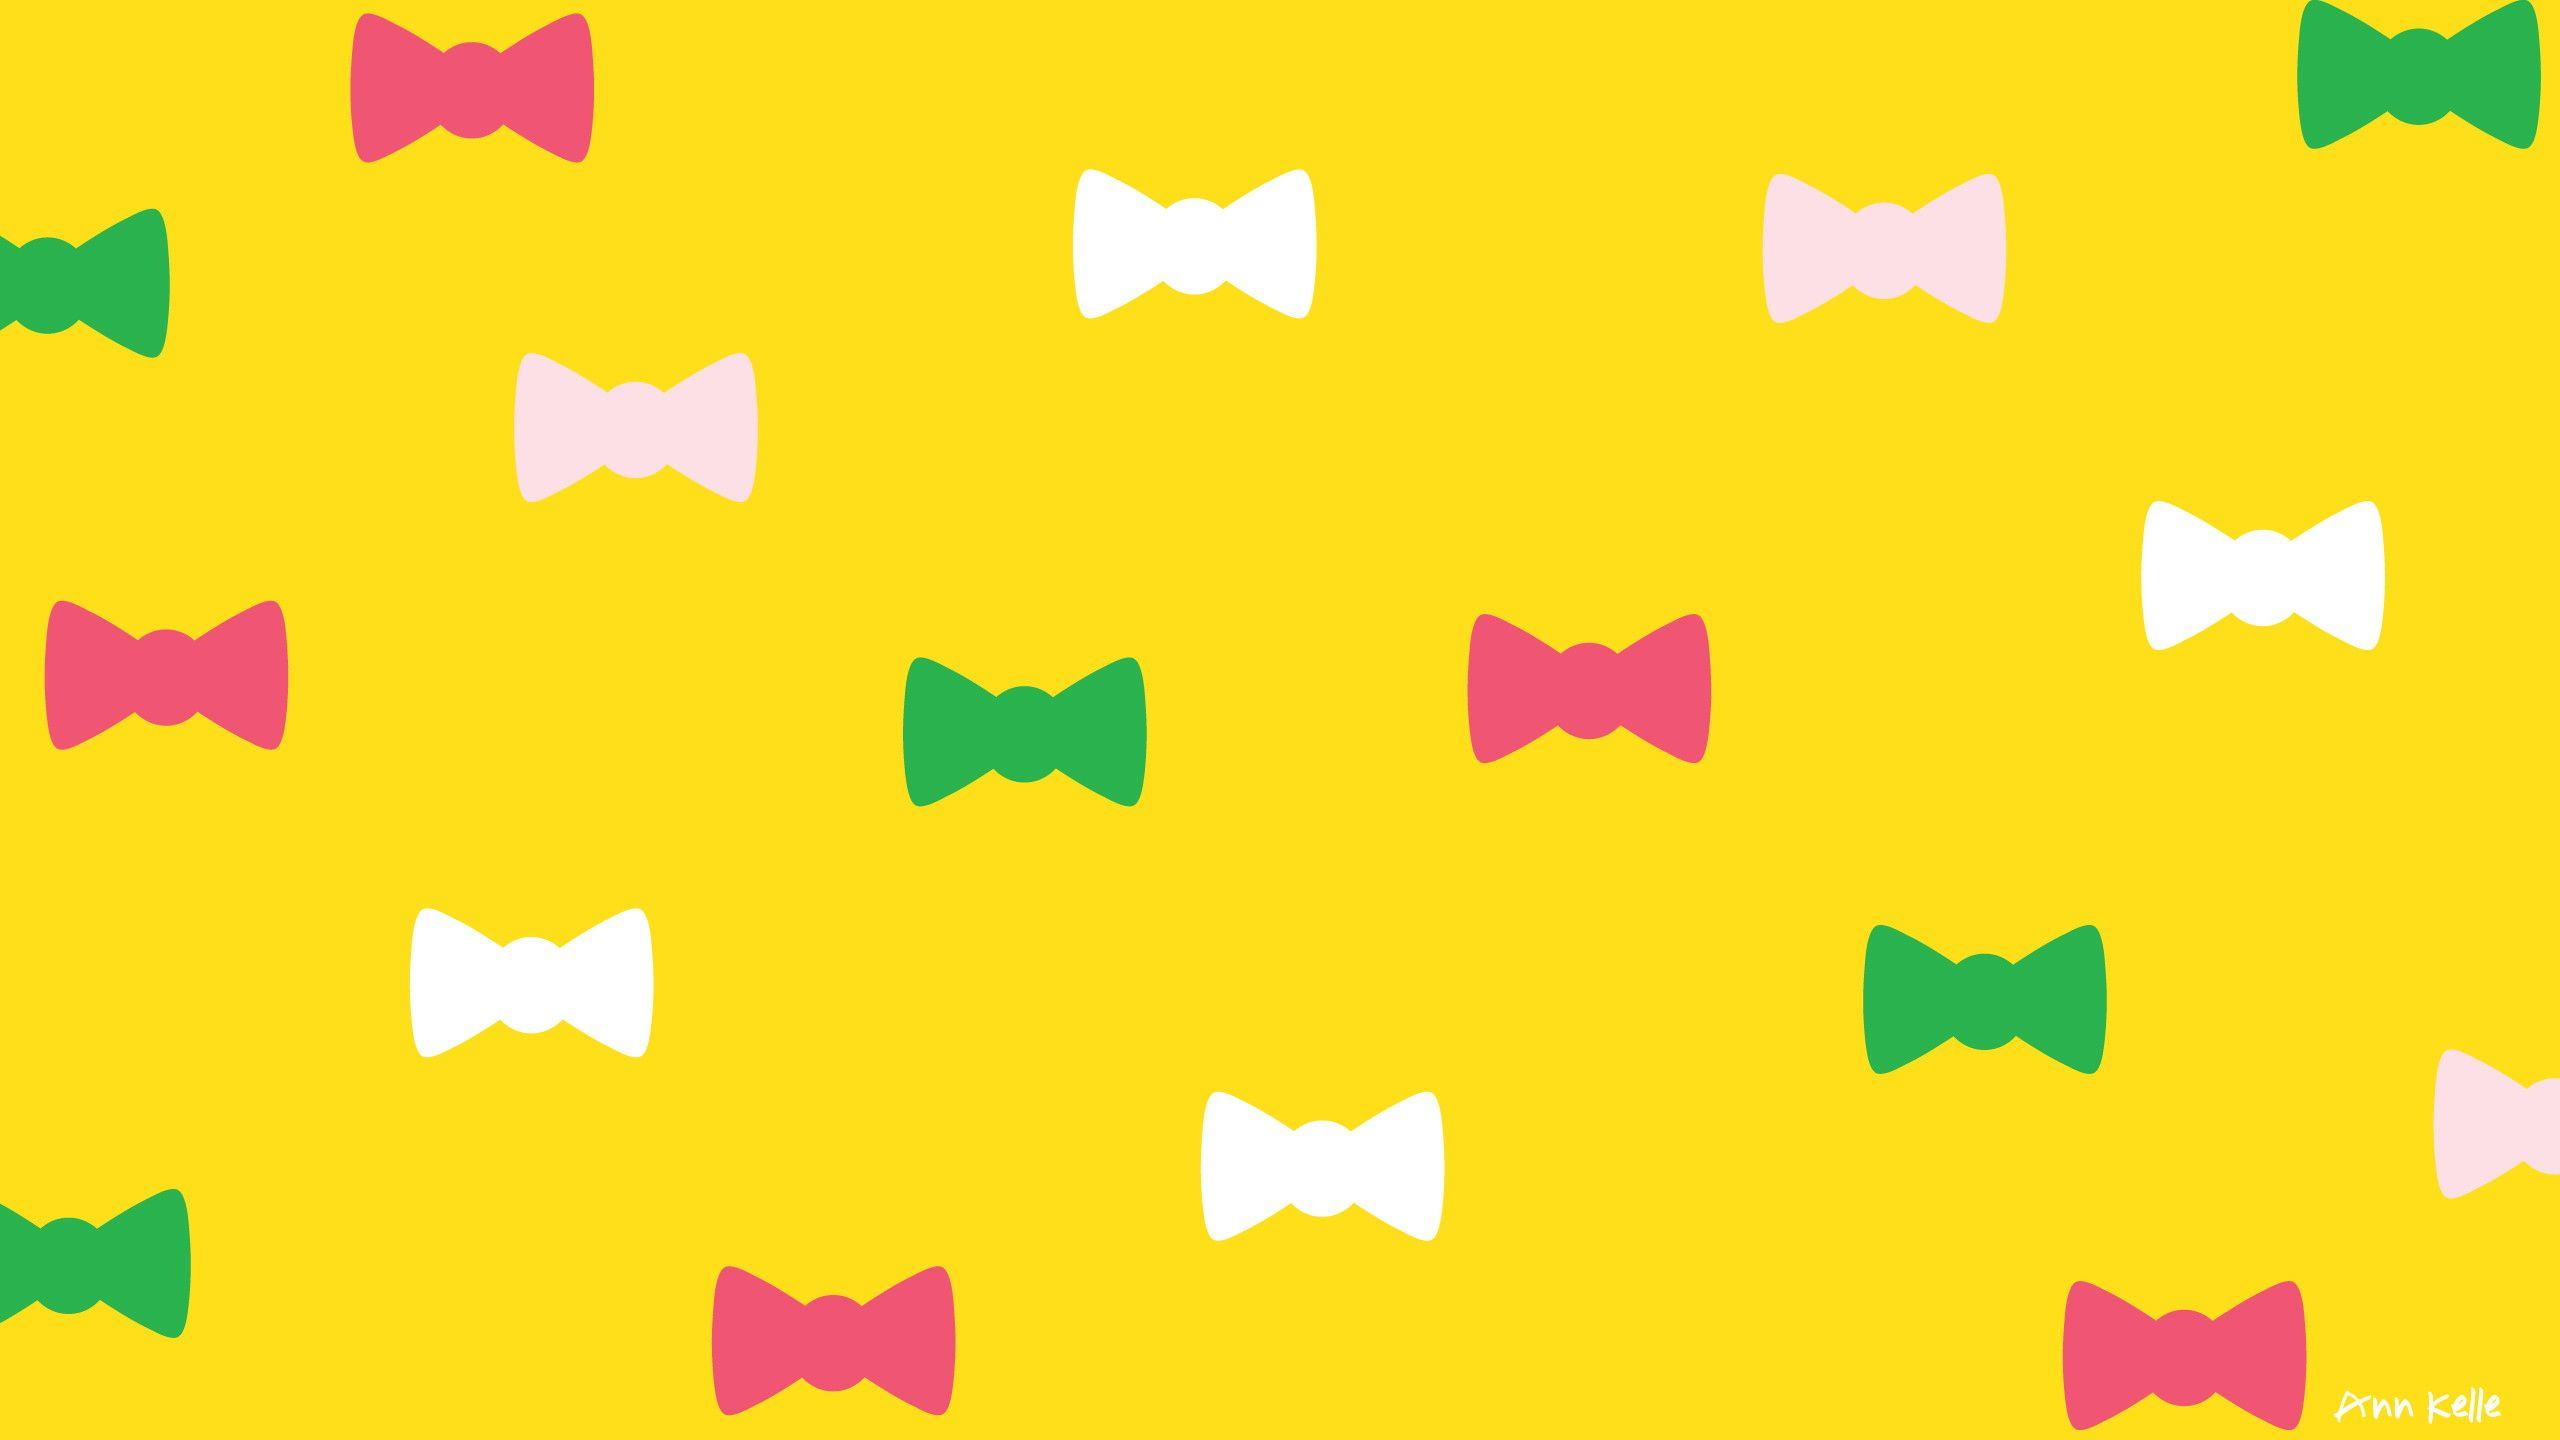 2560x1440 60+ Bow Tie Wallpapers on WallpaperPlay